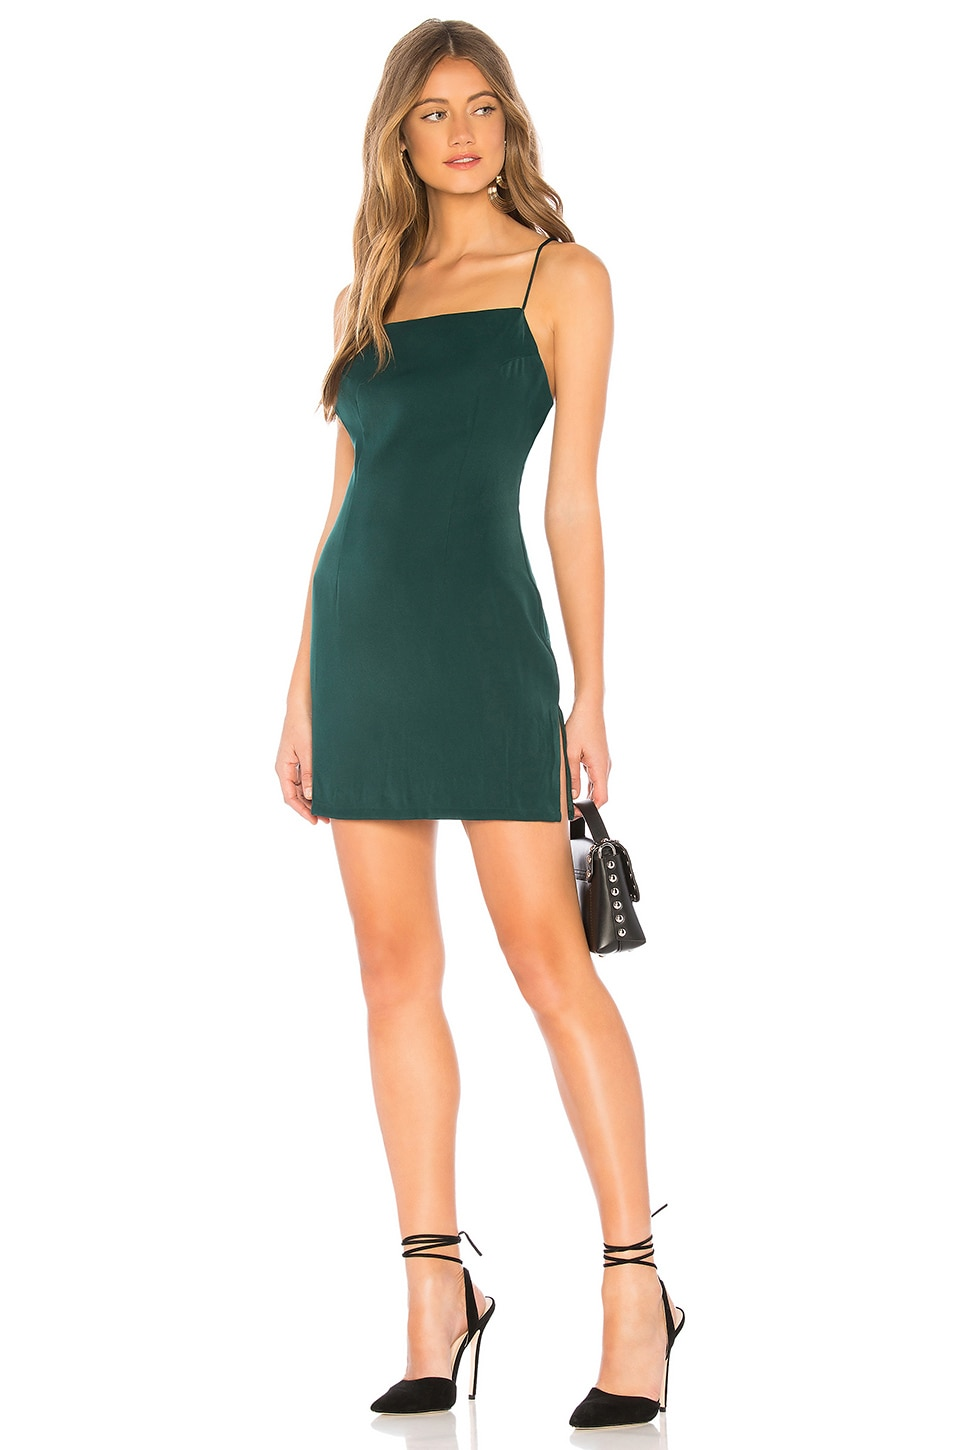 855c065a38534 About Us Rita Mini Dress in Forest Green | REVOLVE